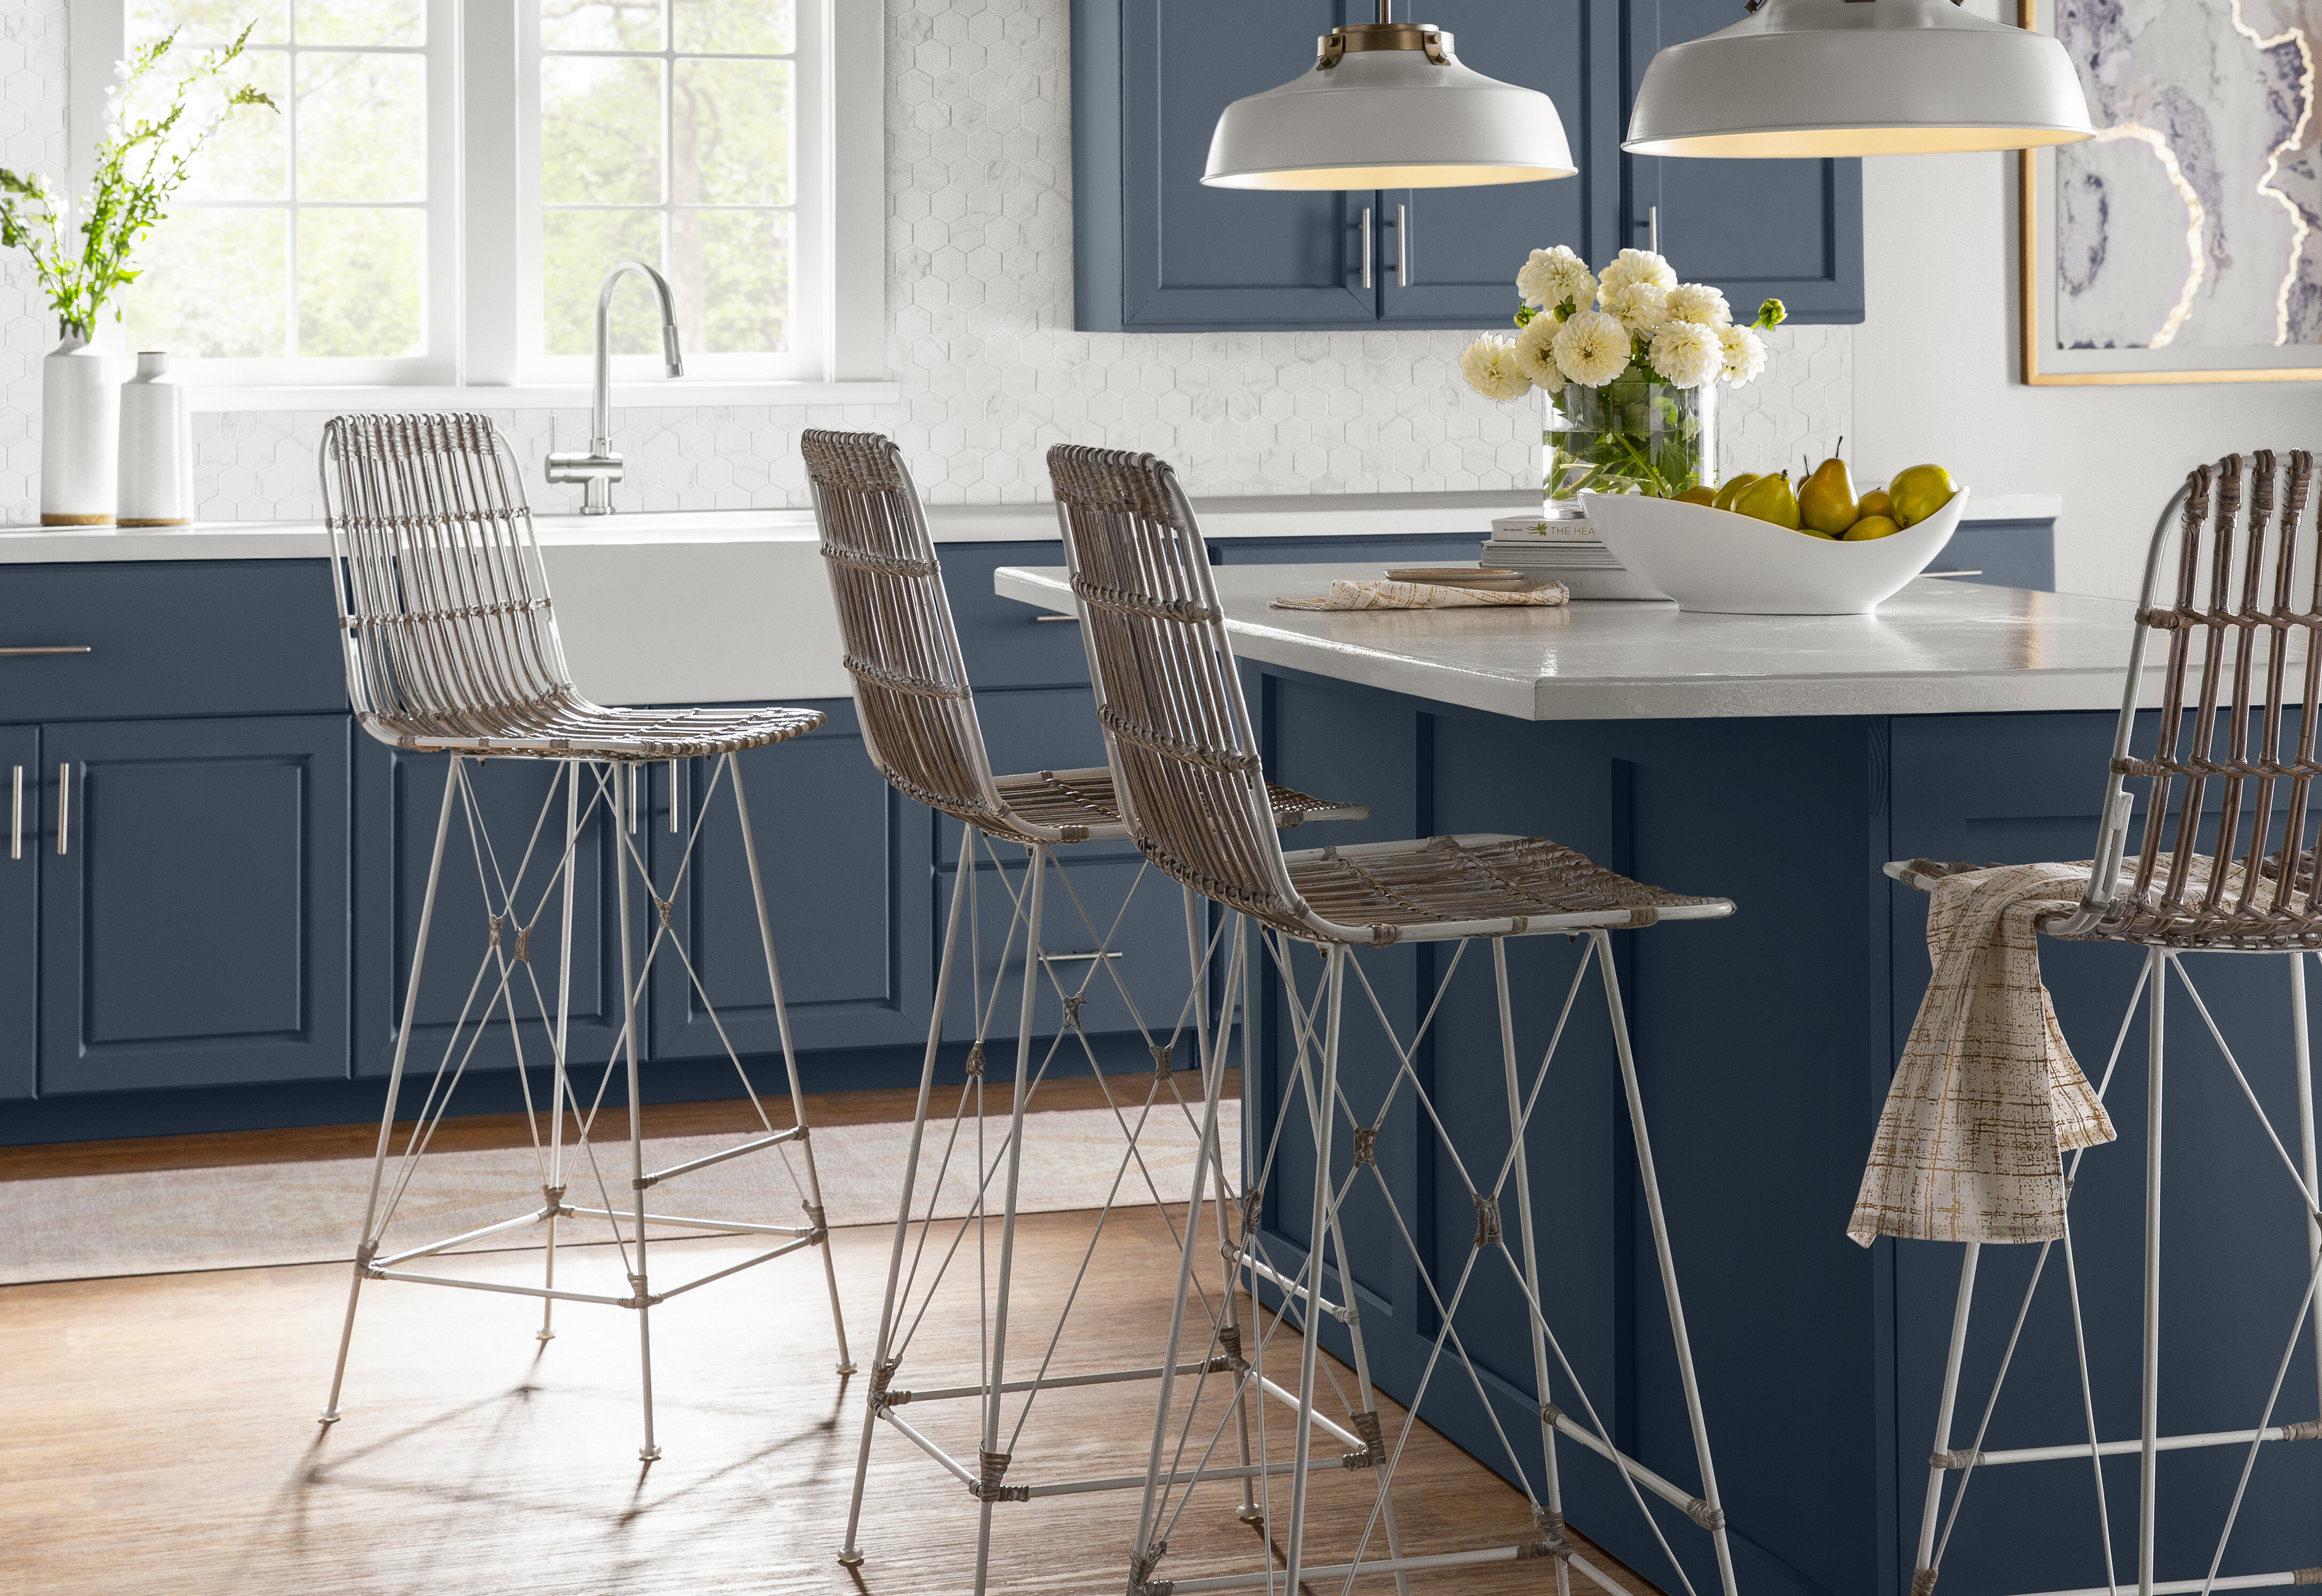 Kitchen Island Decorating Ideas In 3 Easy Steps Joss Main